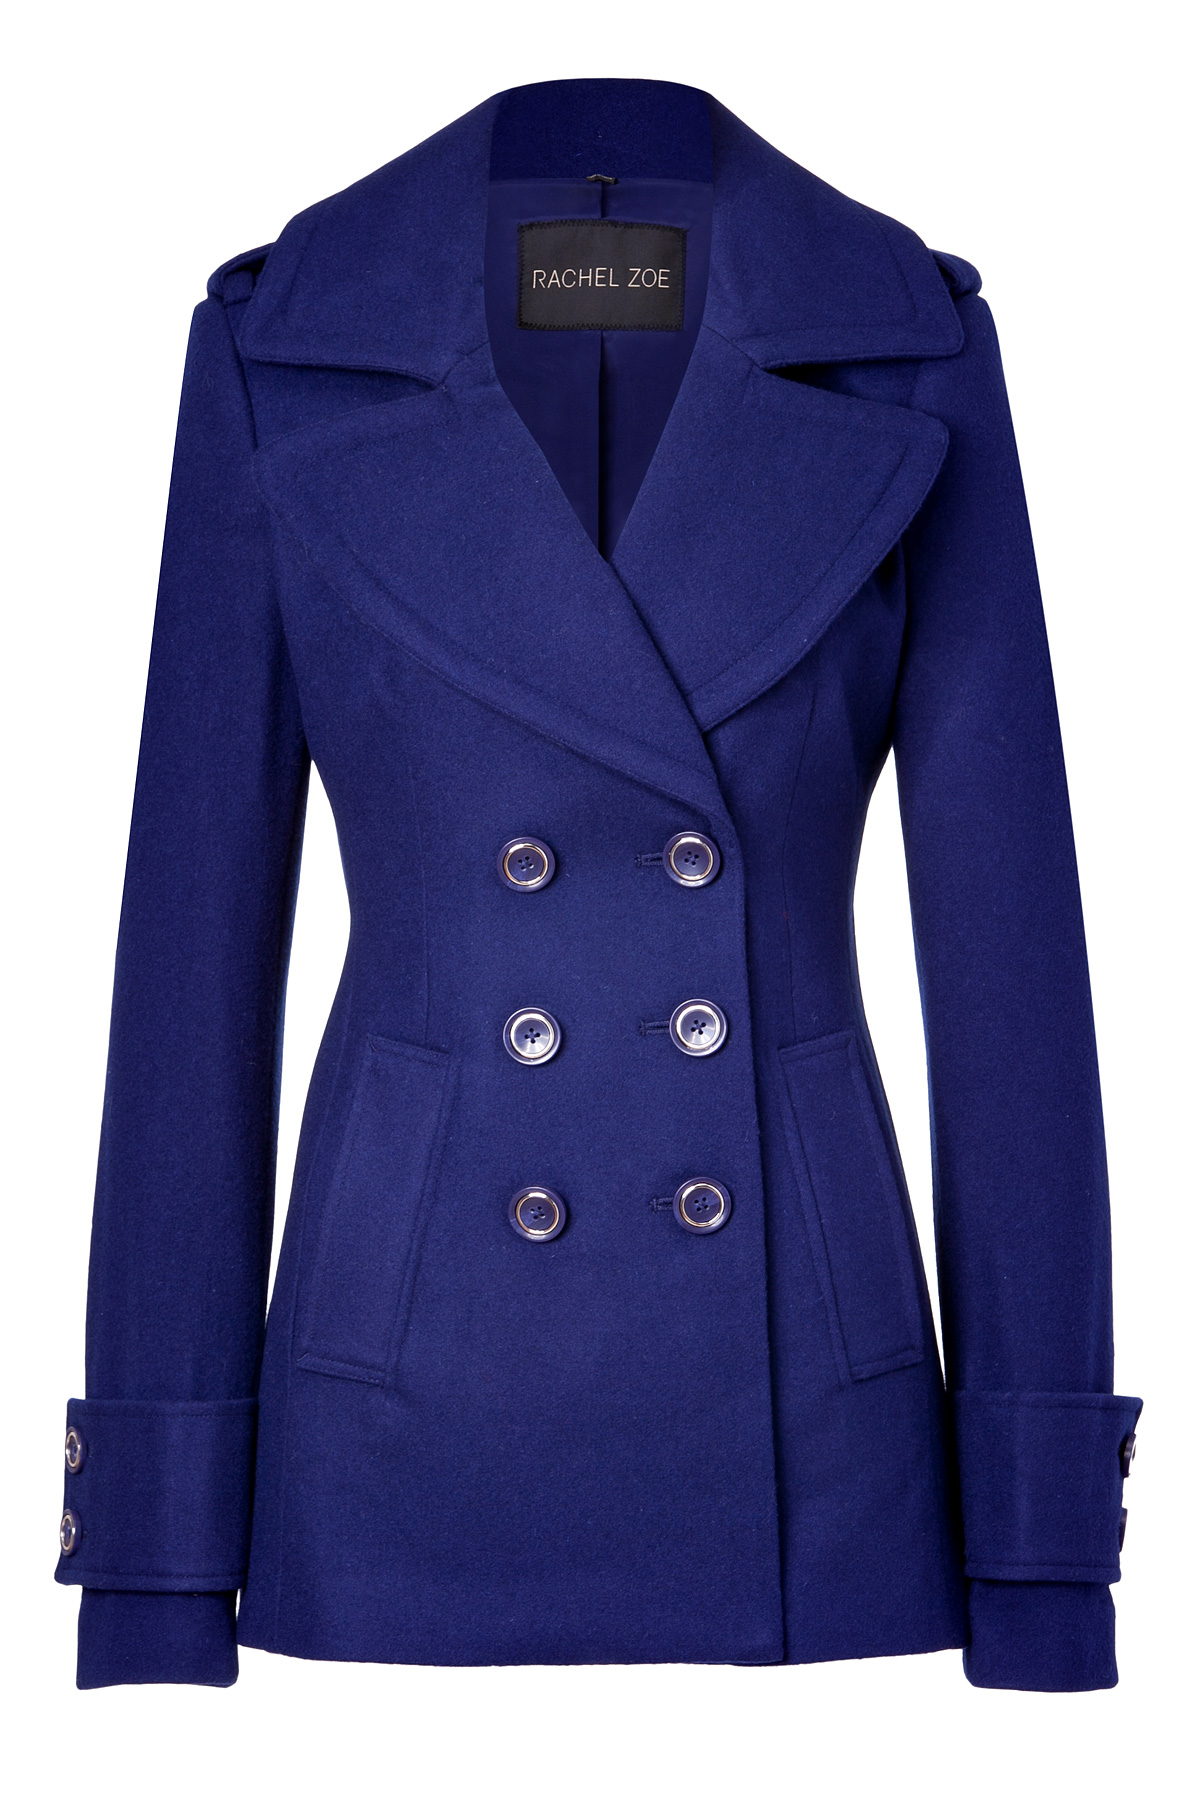 Find a great selection of coats, jackets and blazers for women at cybergamesl.ga Shop winter coats, peacoats, raincoats, as well as trenches & blazers from brands like Topshop, Canada Goose, The North Face & more. Free shipping & returns.